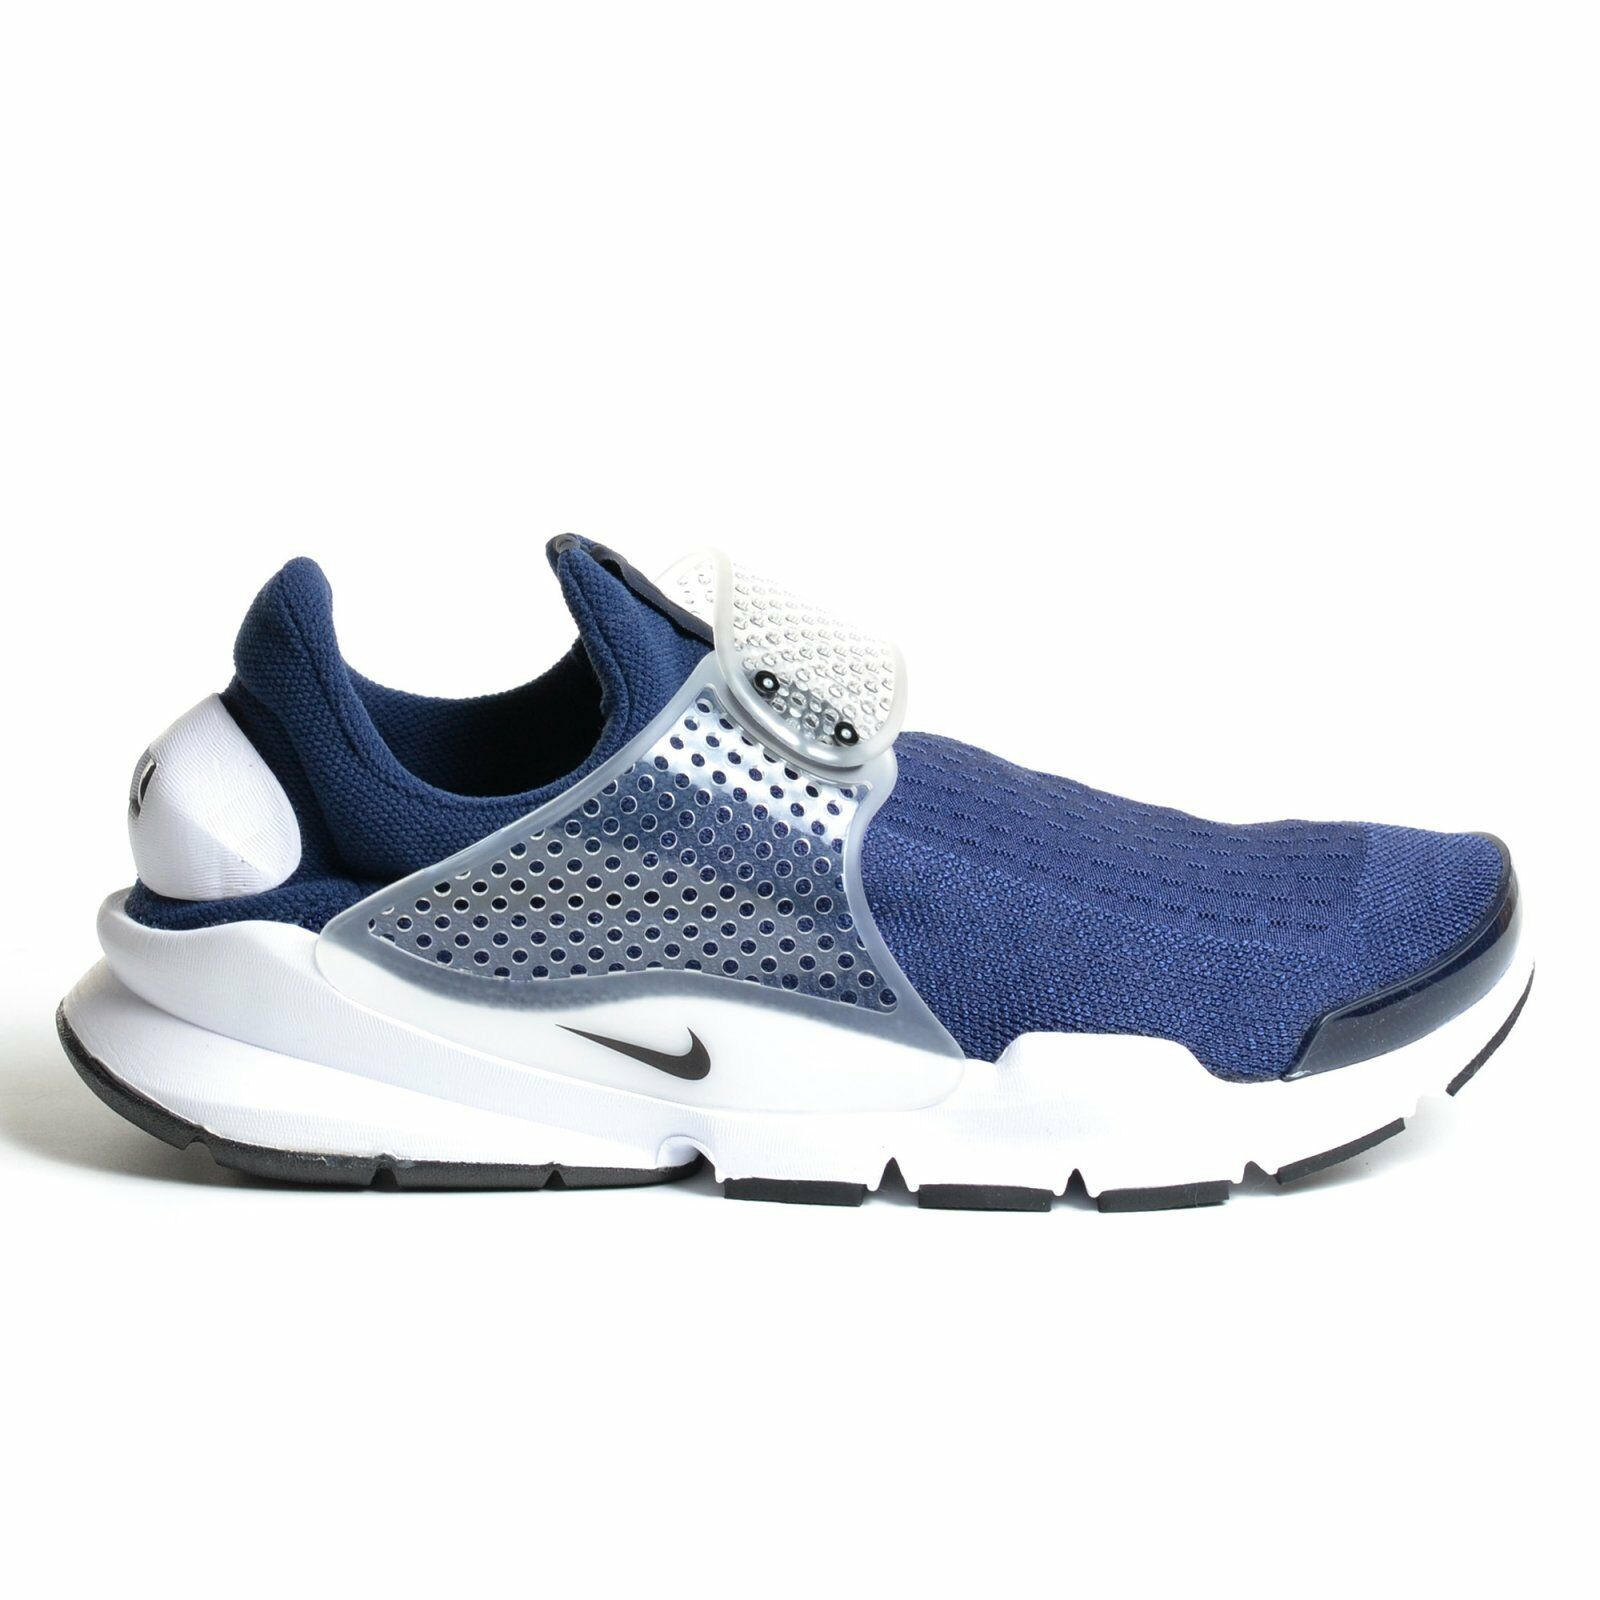 Nike Sock Dart Midnight Navy 2018 White Grey KJCRD Knitted Jacqaurd 819686-400